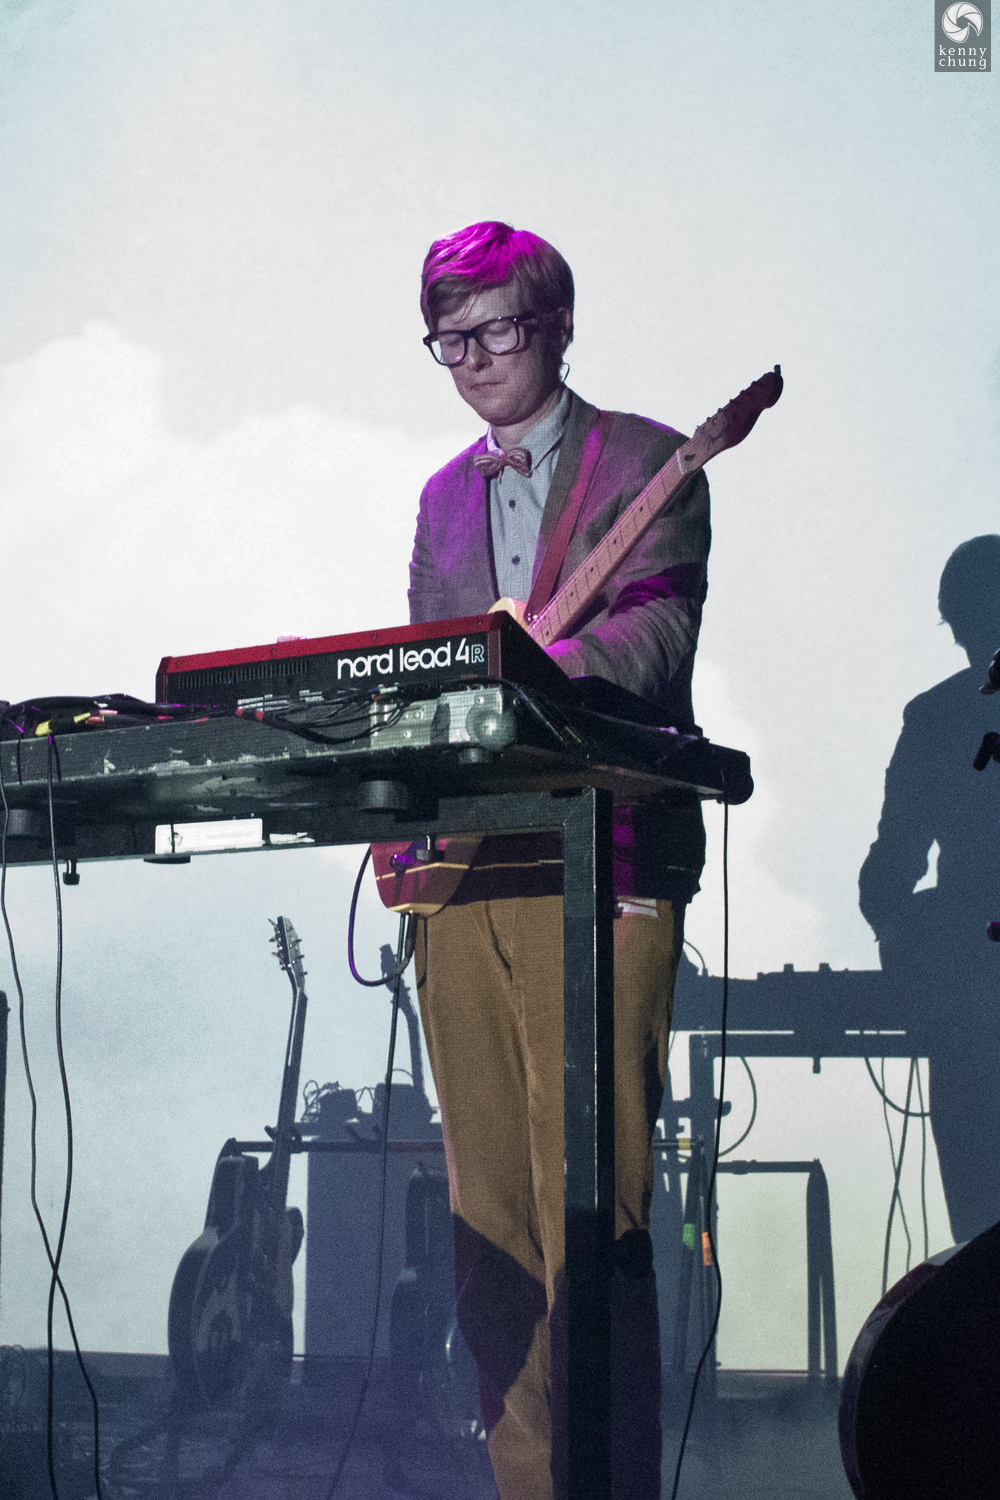 J. Willgoose Esq playing his Nord Lead 4R synth